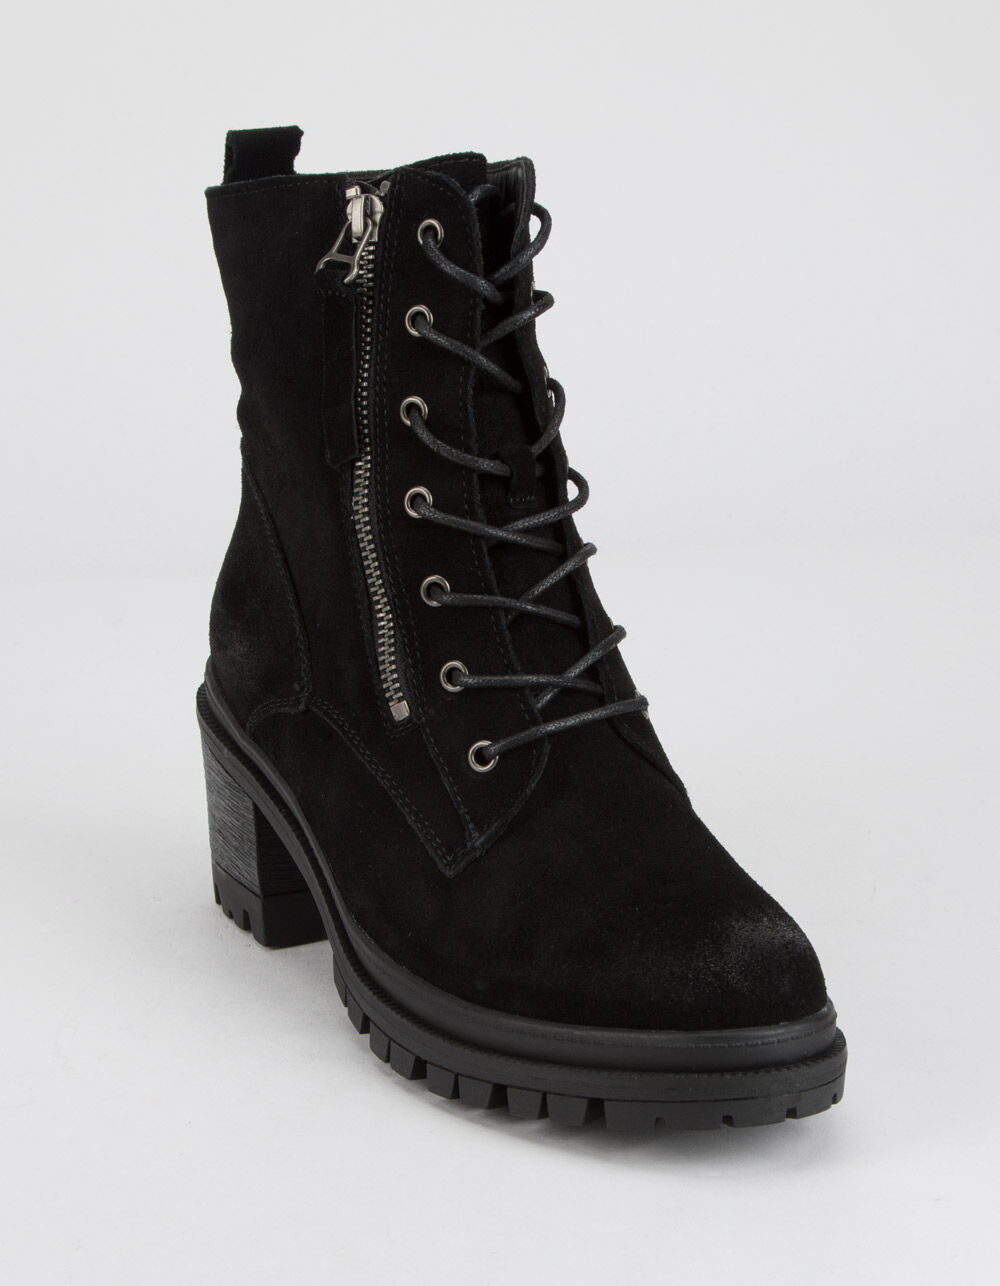 WILD DIVA Suede Lace Up Lug Boots